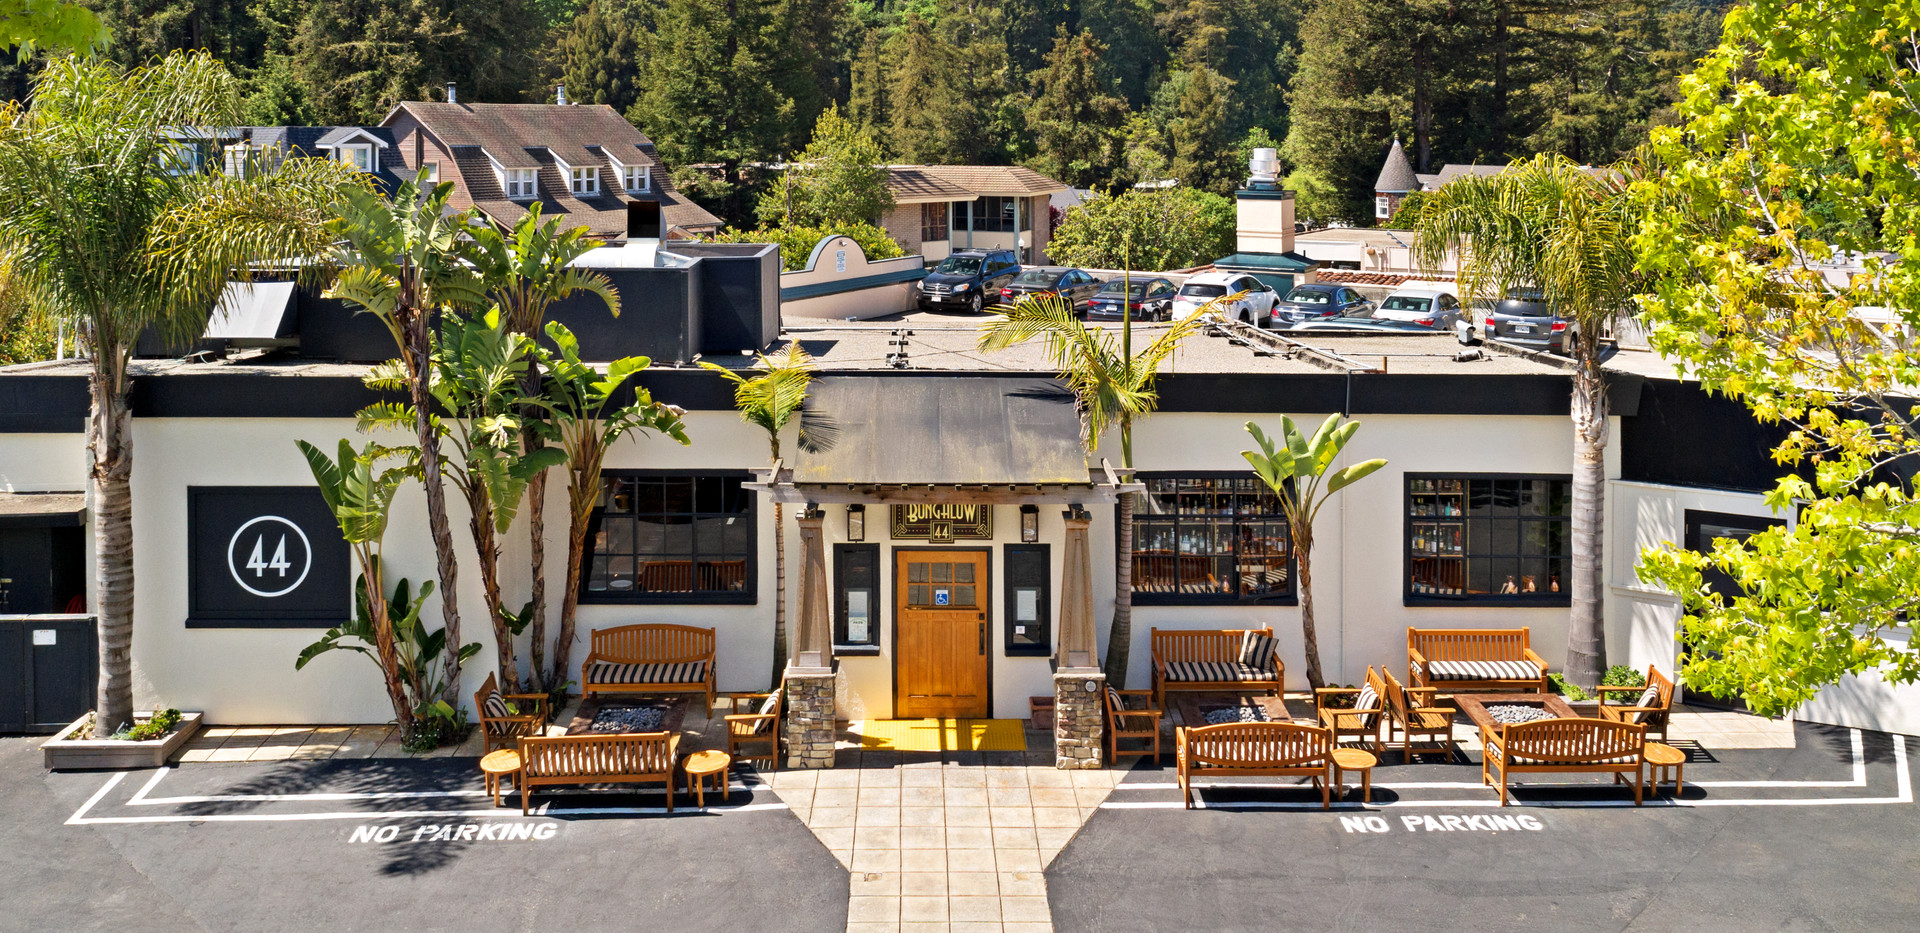 Bugalow 44 in Mill Valley